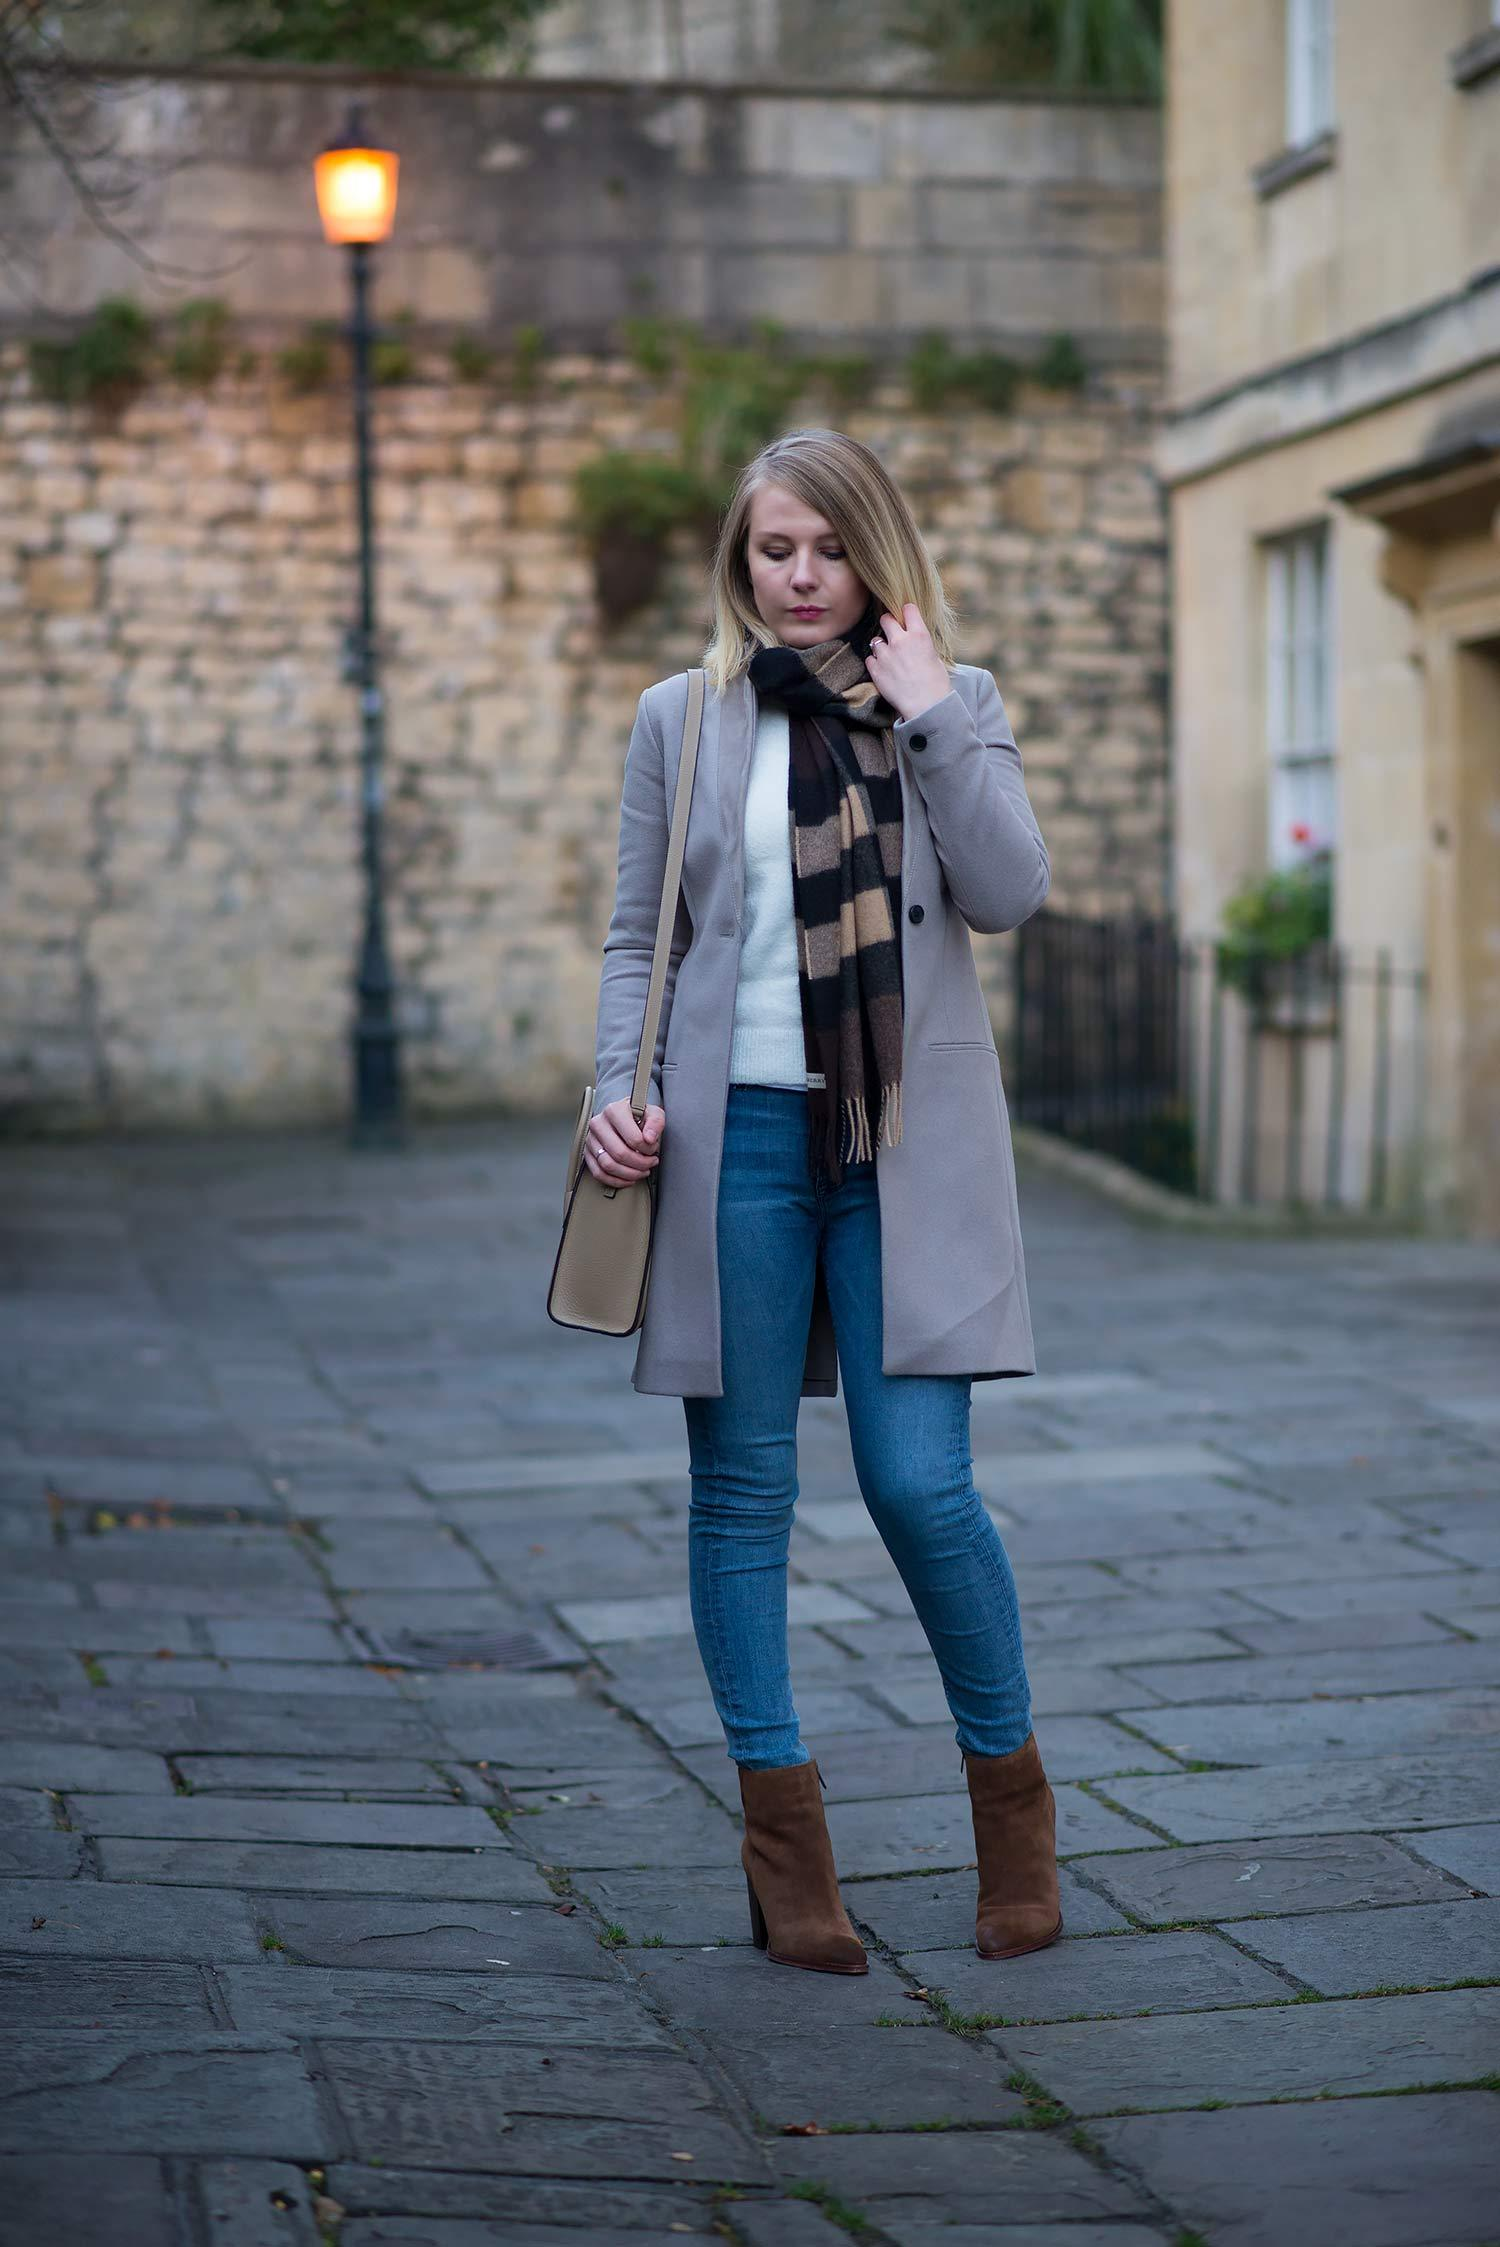 uk-fashion-blogger-street-style-outfit